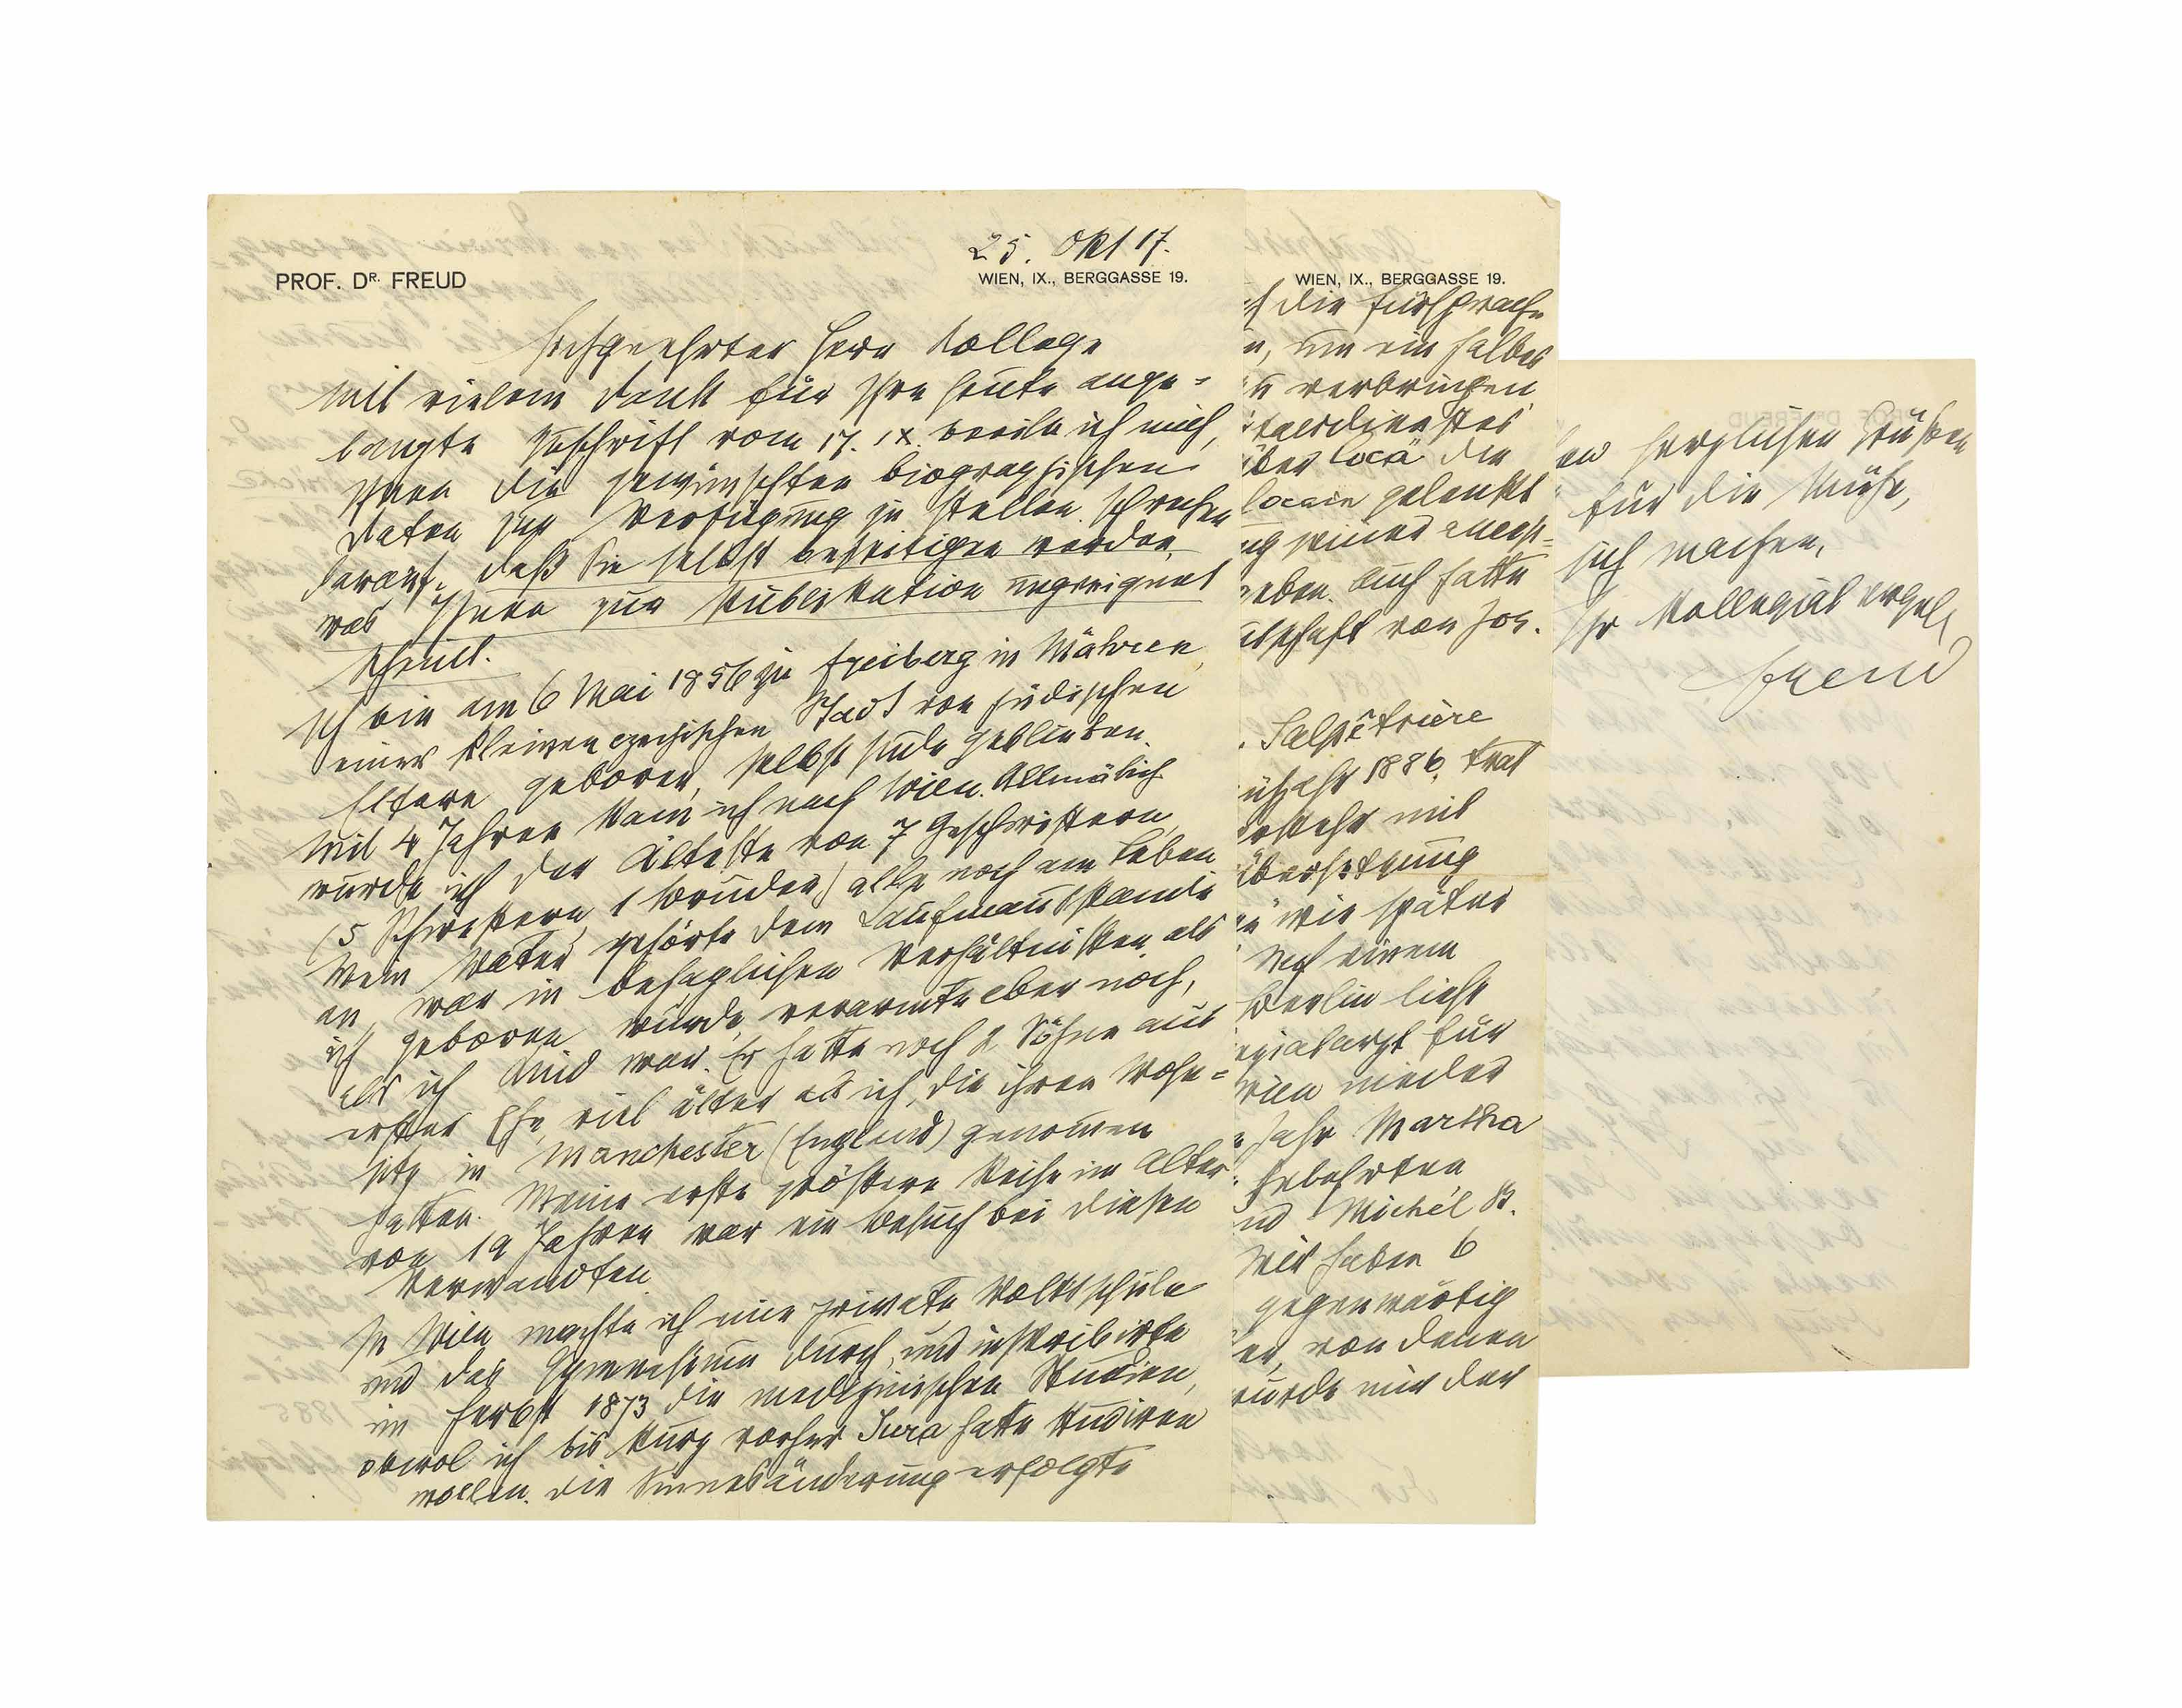 FREUD, Sigmund (1856-1939). Two autograph letters signed ('Freud') to Dr Albert Willem van Renterghem, 19 Berggasse, Vienna, 17 January and 25 October 1917, in German, the first 1½ pages, folio, annotated with an interlinear transliteration (?by the recipient), the second 4 pages, folio, and 1½ pages, 8vo, envelope; with a typed transcription of the second letter, a retained copy of van Renterghem's letter to Freud of 21 December 1916, and a printed edition of van Renterghem's Dutch translation of Freud's Introduction to Psychoanalysis (Amsterdam, 1918), in 2 volumes, 8vo.